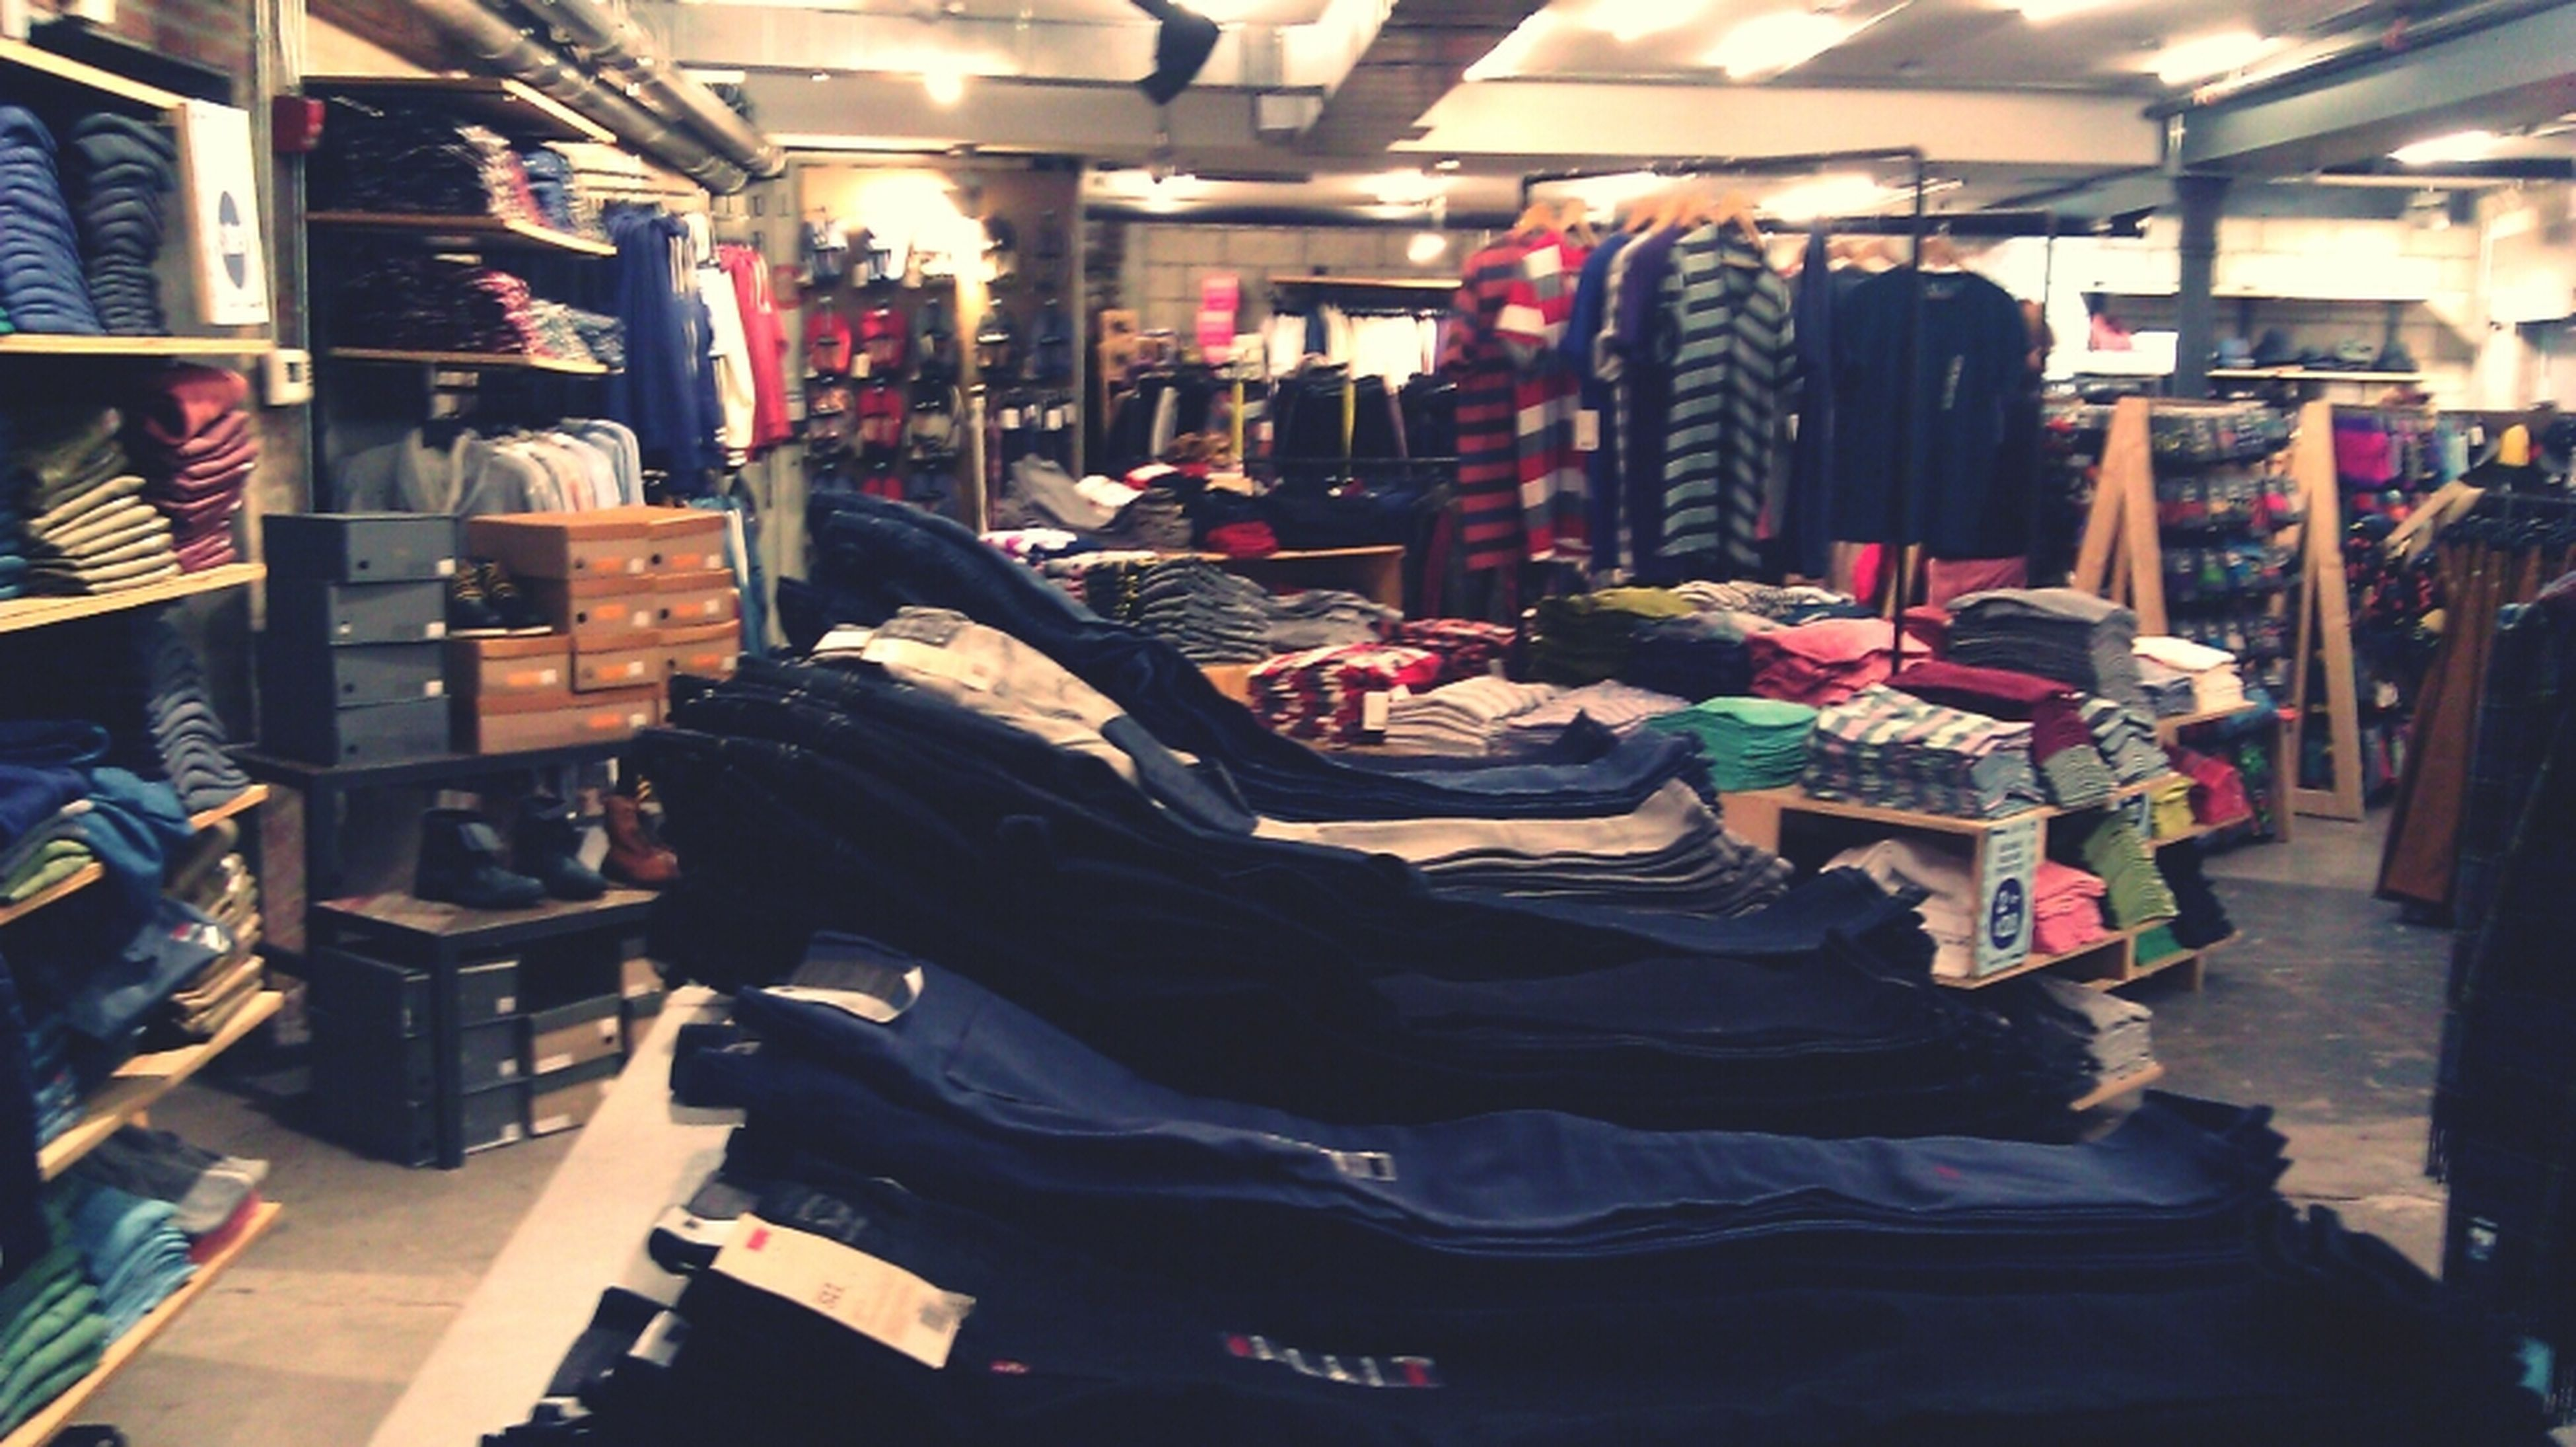 indoors, retail, for sale, store, market, large group of objects, abundance, shopping, choice, market stall, variation, men, in a row, arrangement, small business, incidental people, chair, shop, business